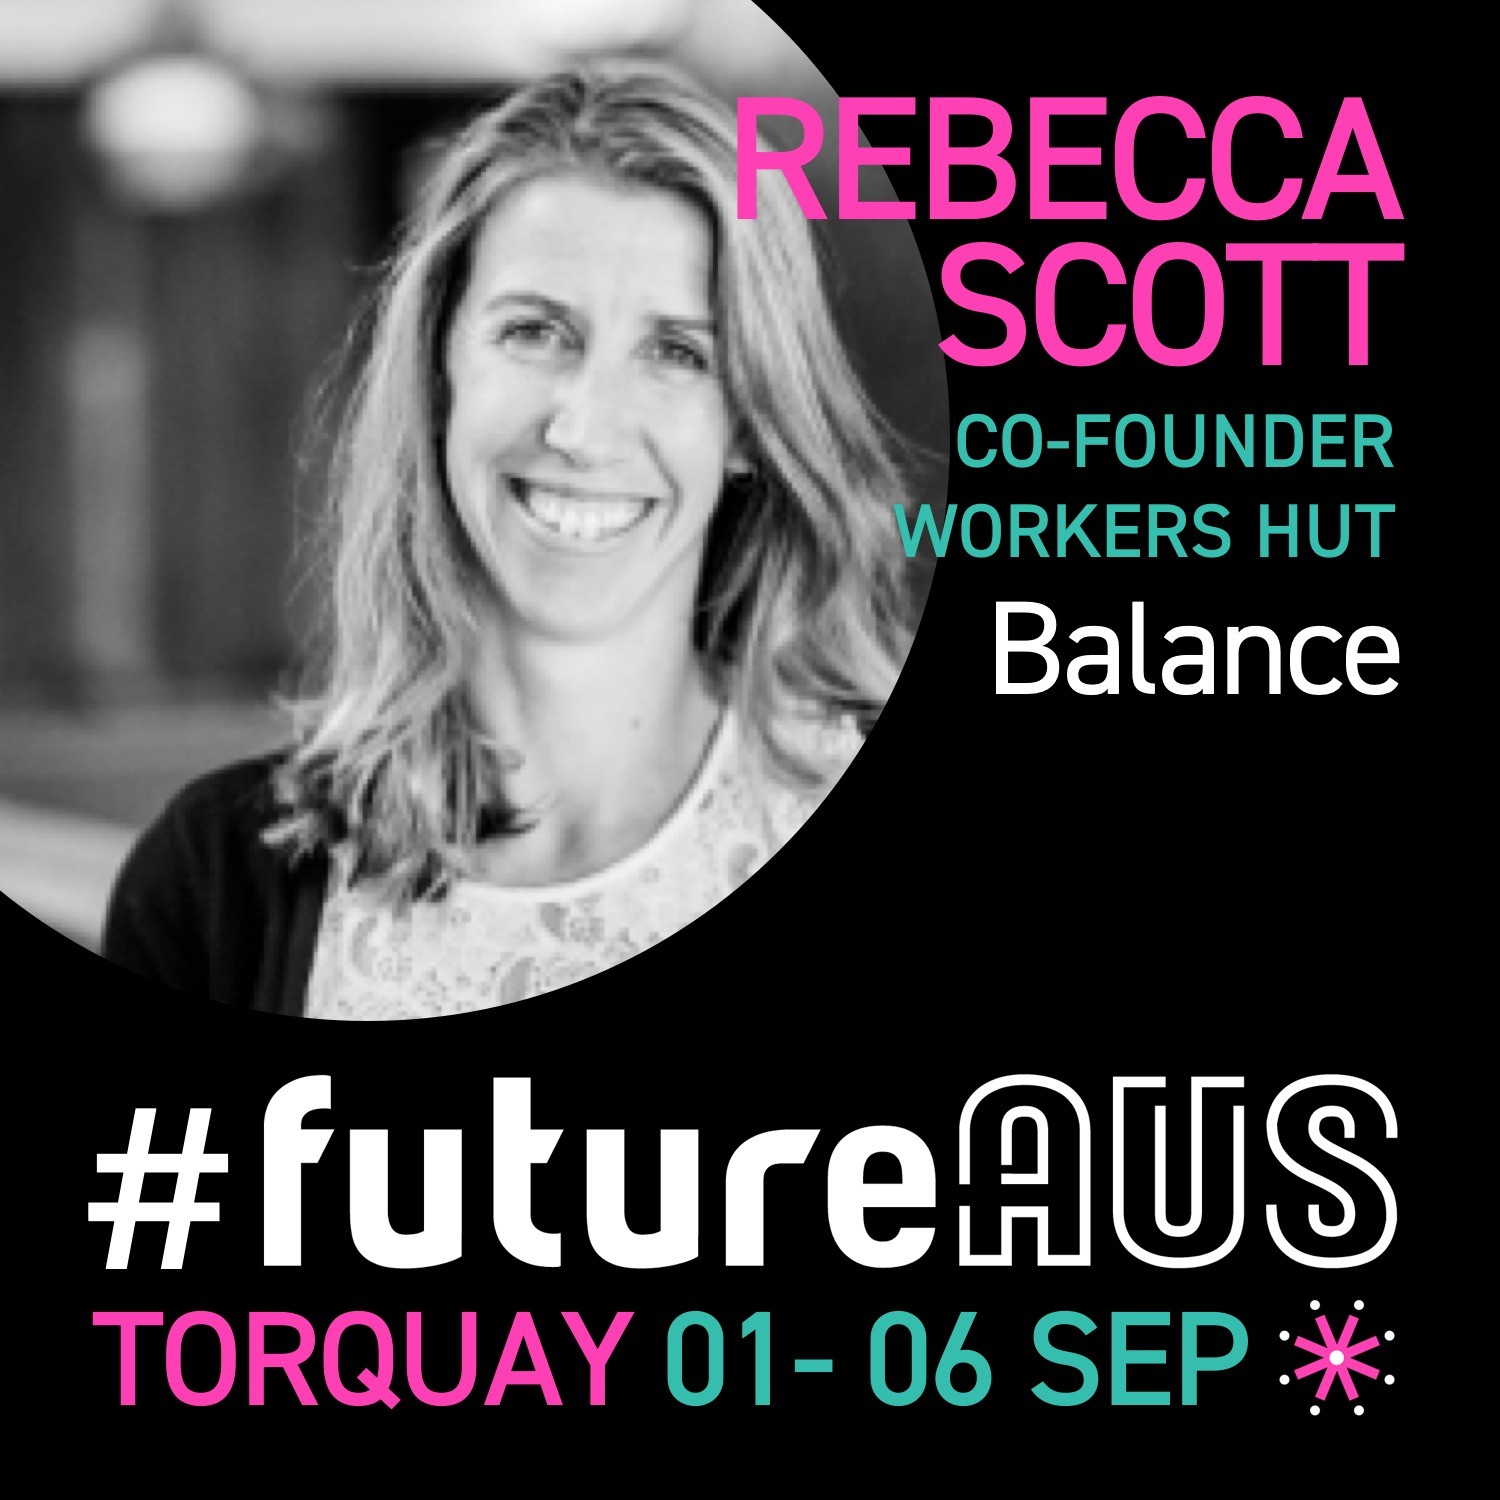 "Rebecca Scott  is a co-founder of the  Workers Hut , the first coworking space on the Surf Coast connecting startups, creatives, tradies and dreamers in a relaxed and vibrant workspace in the iconic surf wear prescinct in Torquay. Rebecca is also the Founder of Health Tech Start up  Eazilee  a combined community and marketplace   using story telling to showcase the possibilities of Assistive Technologies to enable greater independence for young people with a disability. This early stage startup is a culmination of a previous 20 year career as a clinical health professional and educator. Eazilee is part of the Melbourne Health Accelerator (MHX) at the Royal Melbourne Hospital. Rebecca will share her insights on  ""finding the balance between family, coworking and tech-startup"""